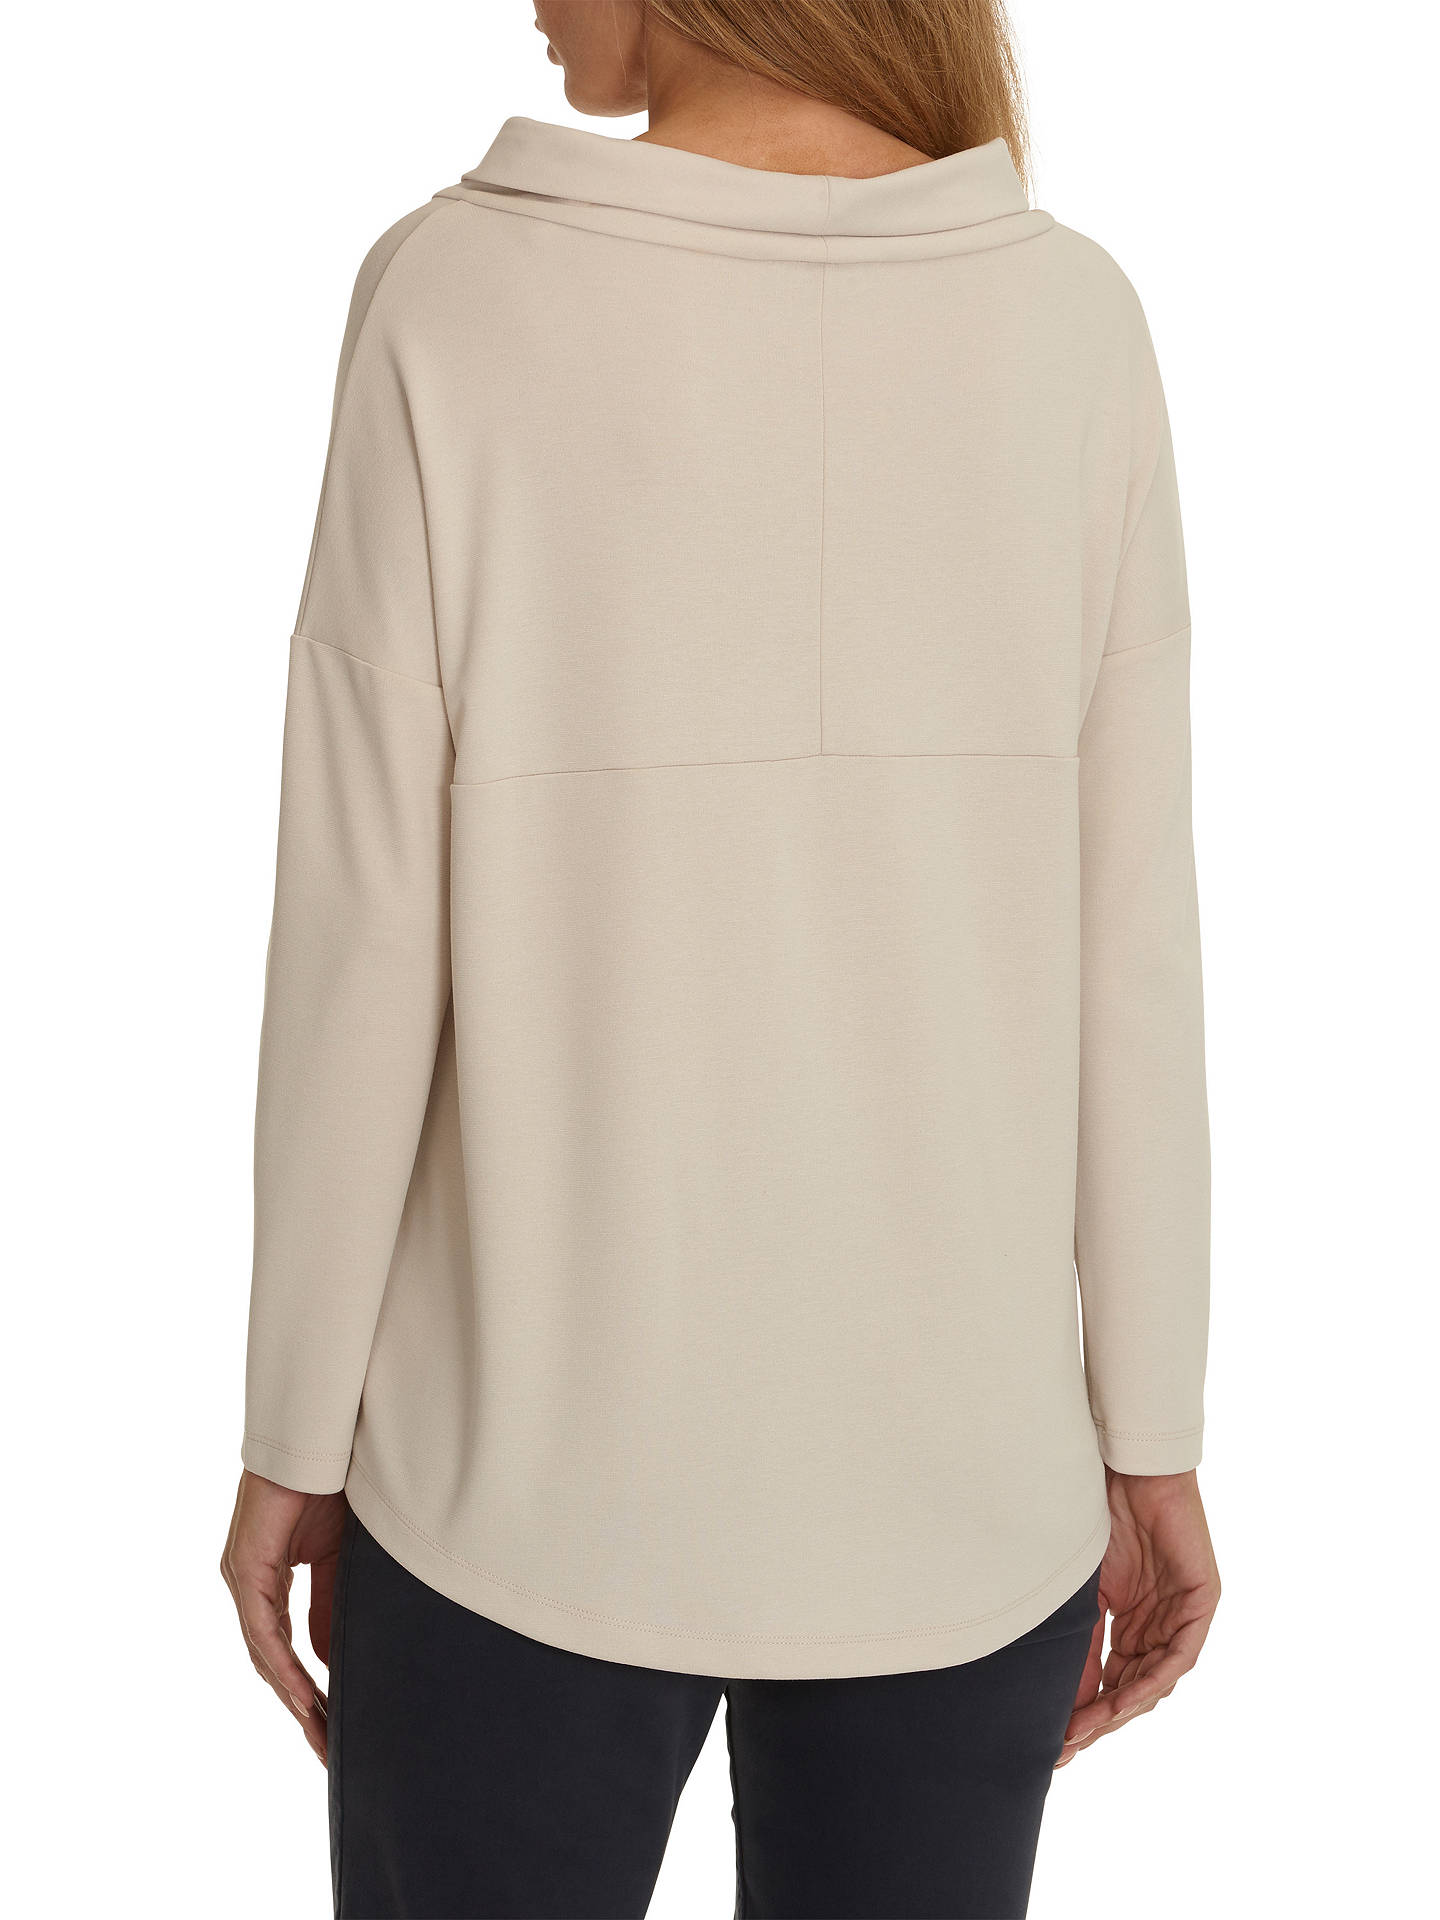 Buy Betty Barclay Loose Fit Sweat Top, Light Beige, 8 Online at johnlewis.com